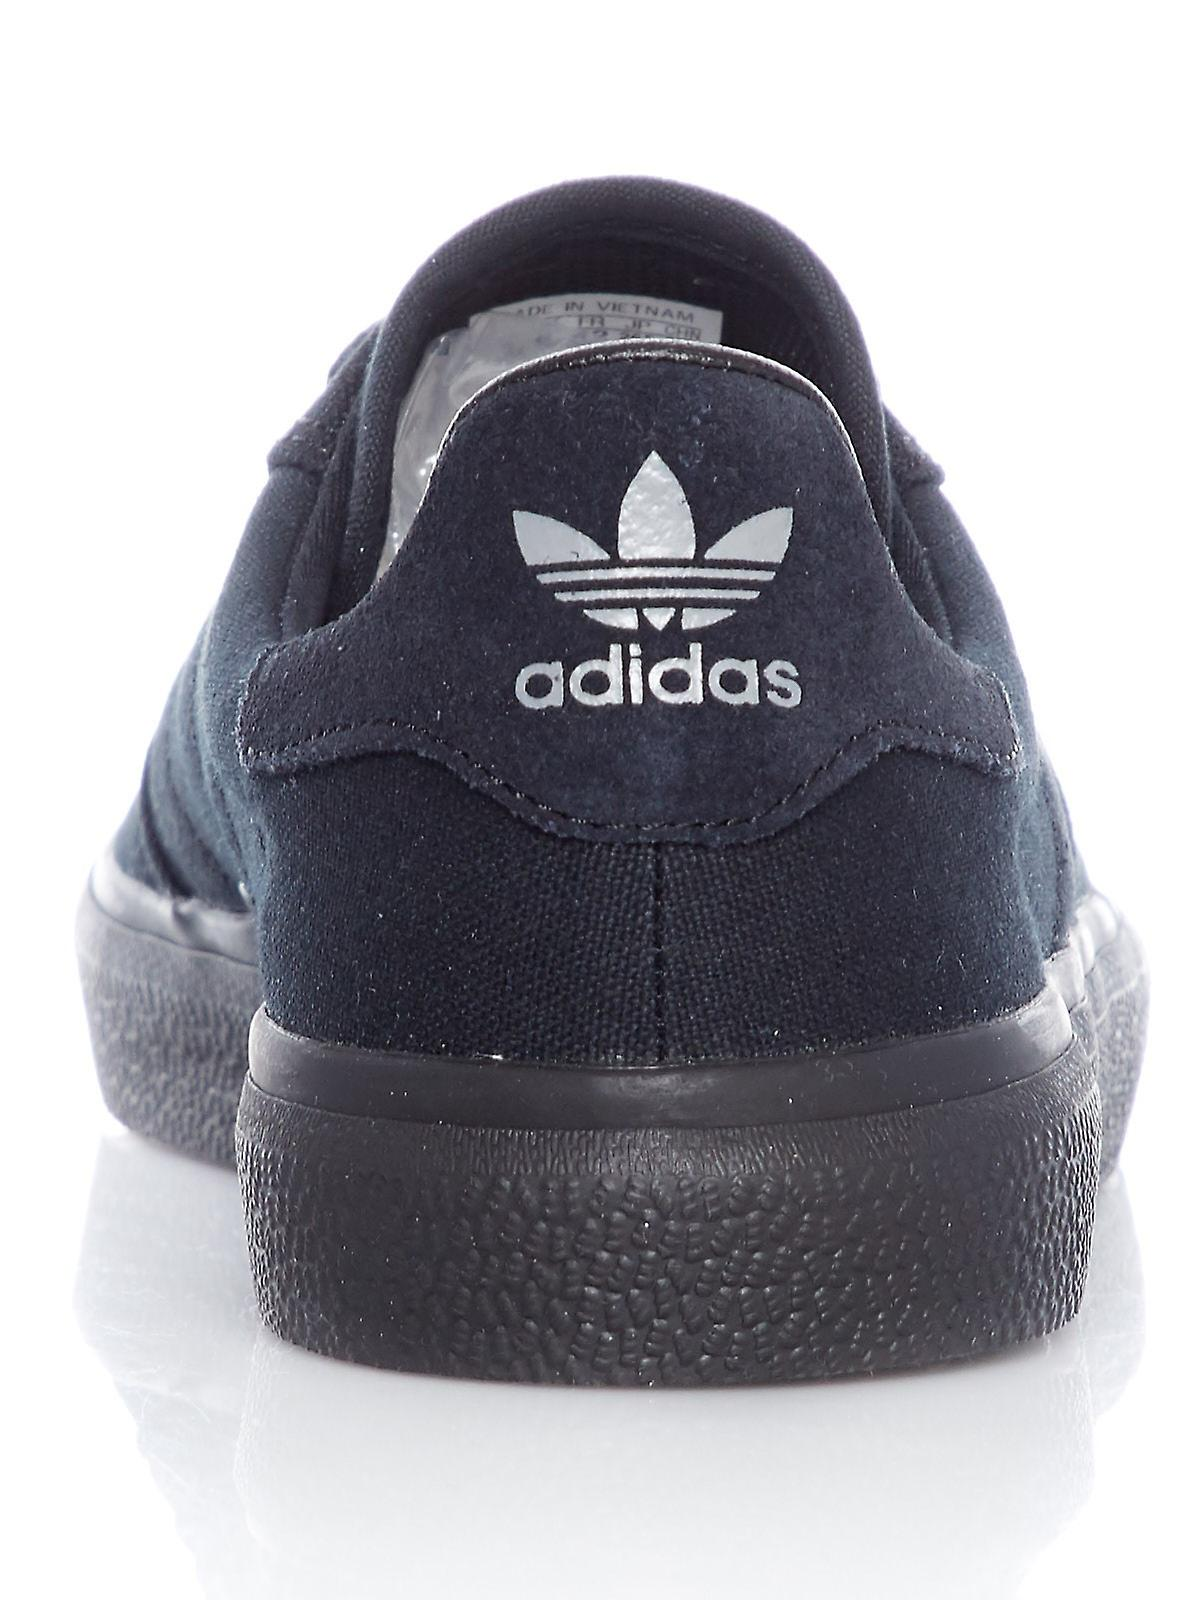 huge discount 84d1a 4d1b1 Adidas Core Black-Grey Two F17 3MC Shoe